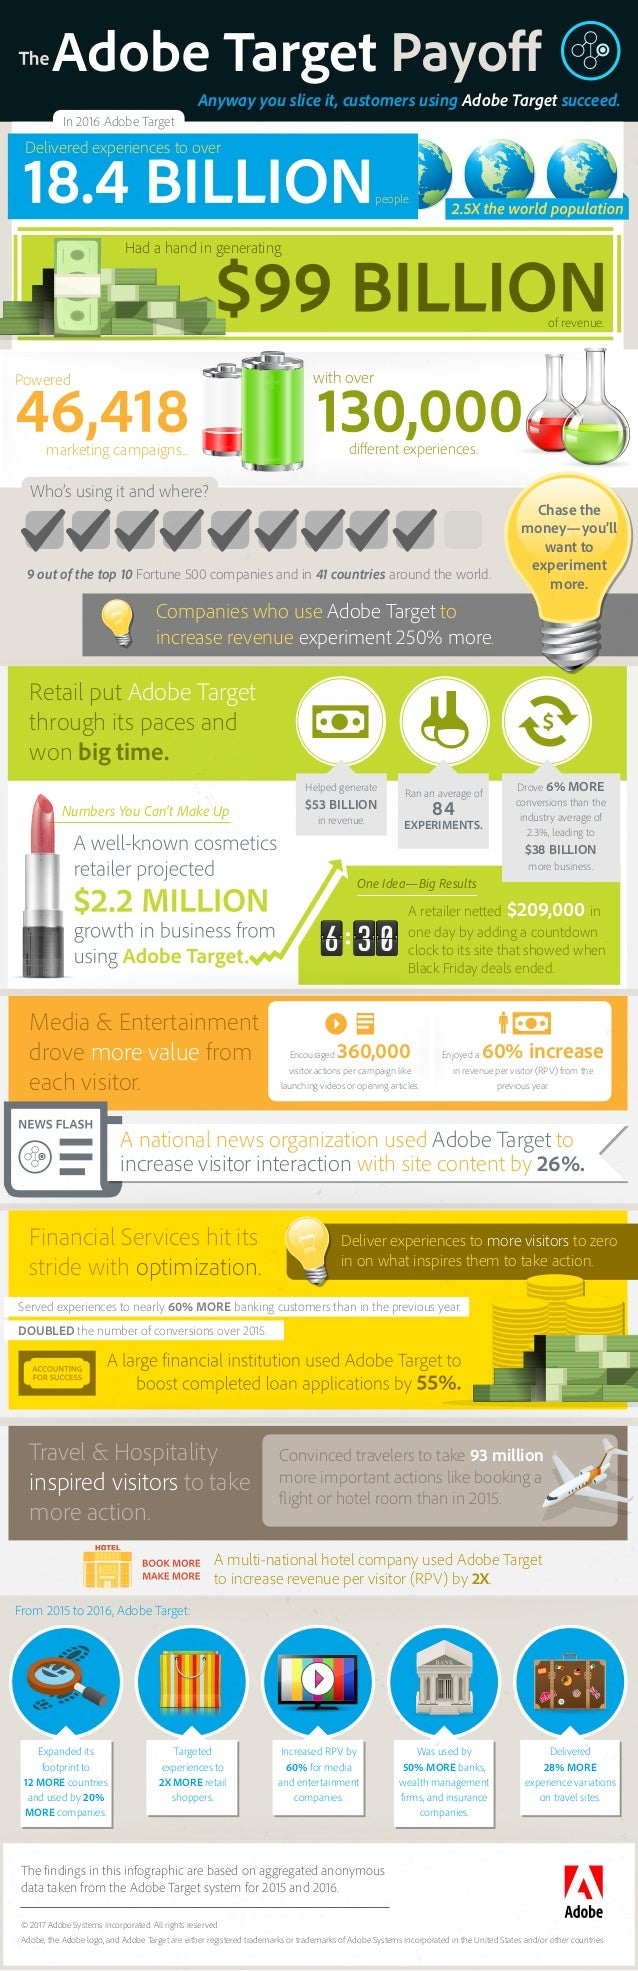 Anyway you slice it, customers using Adobe Target succeed. In 2016 Adobe Target people. Delivered experiences to over of r...